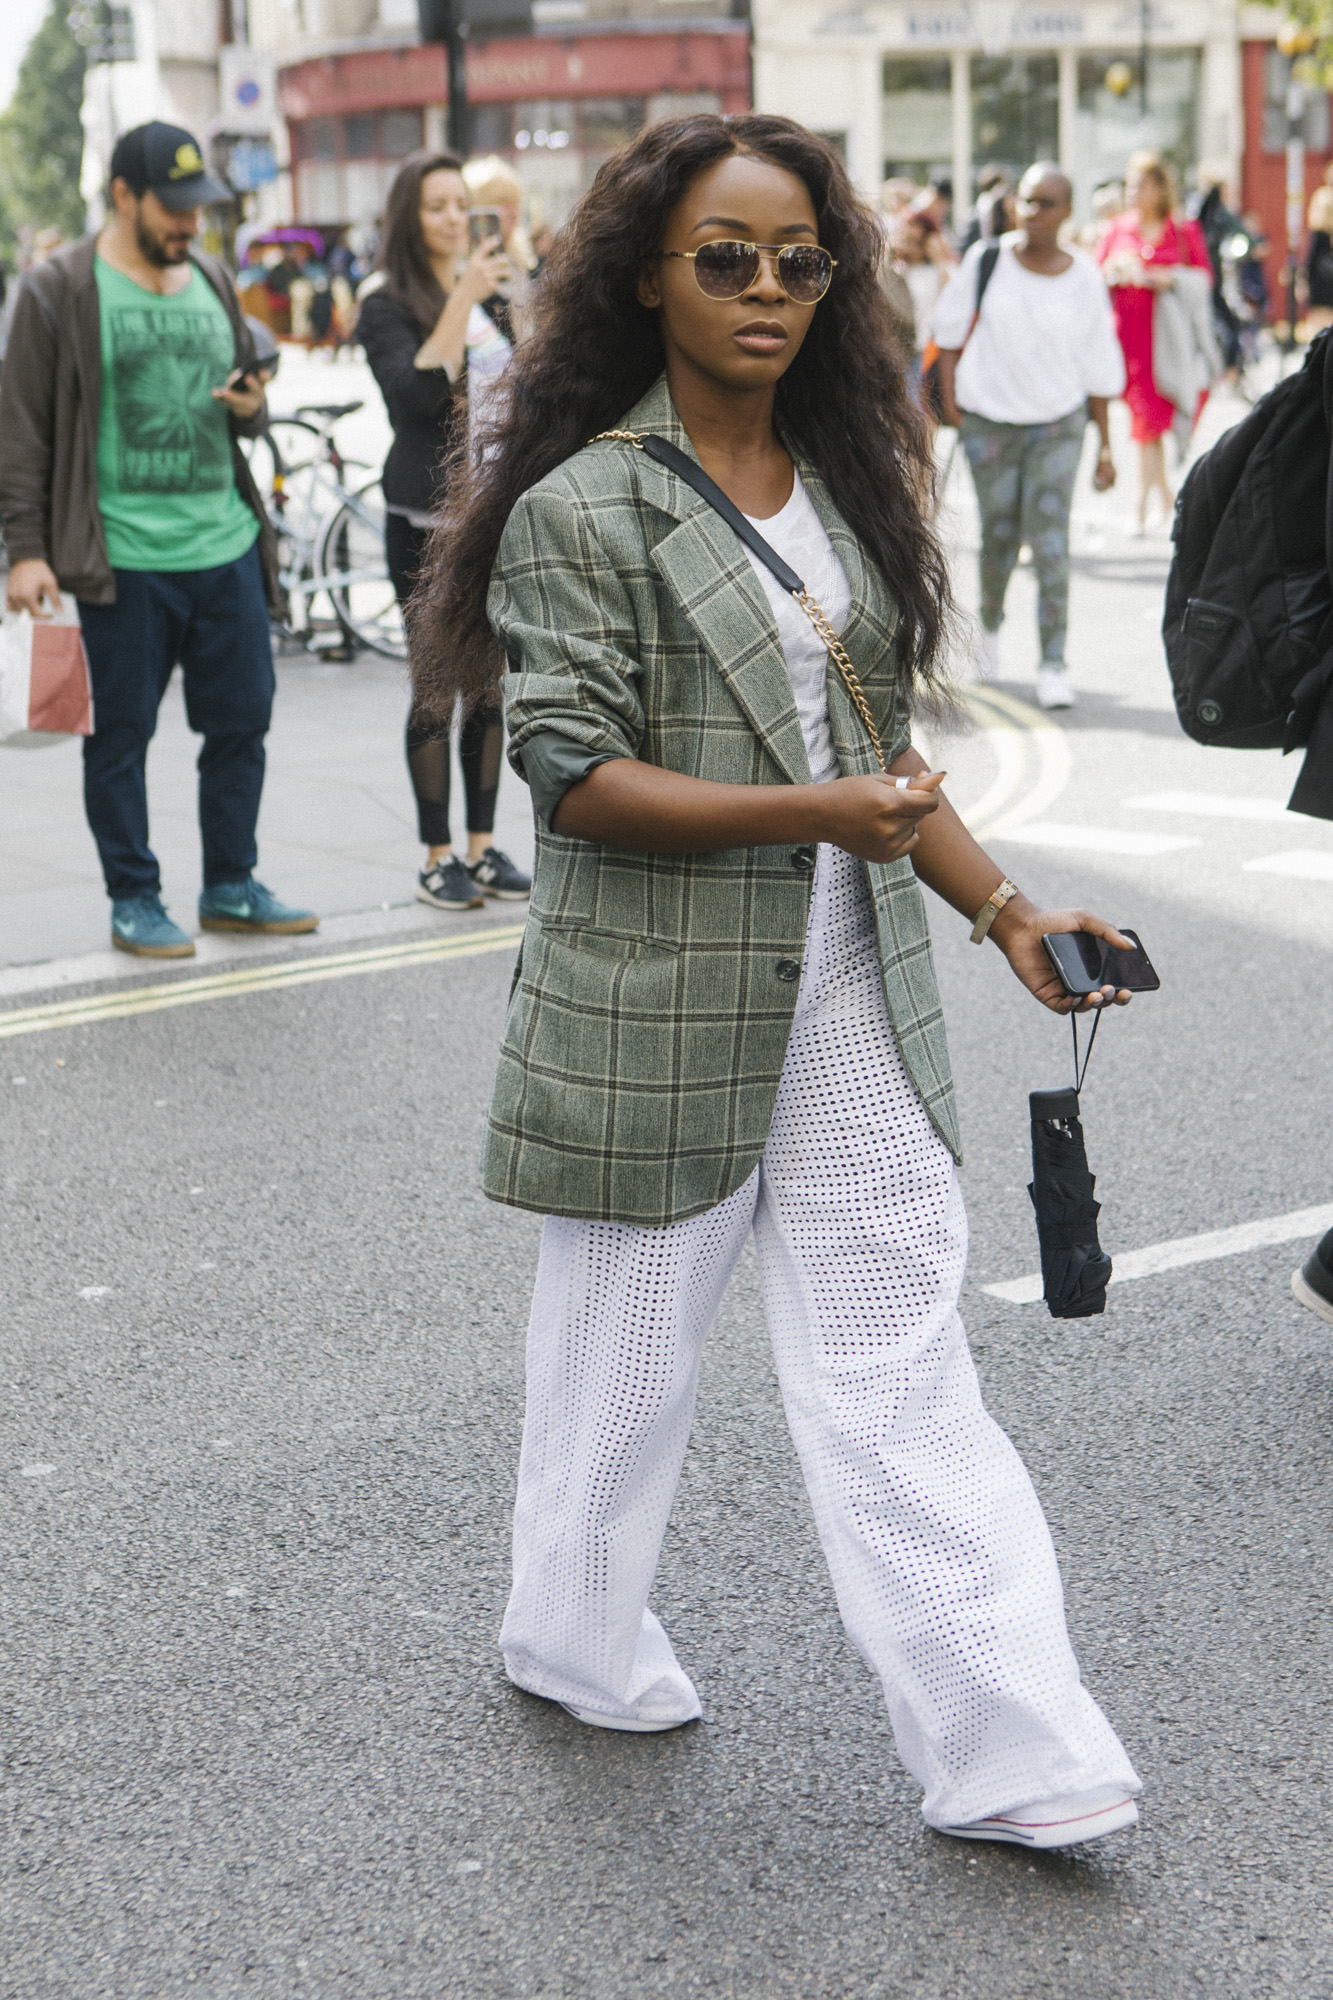 Street Style Photo by Rory James-6.jpg